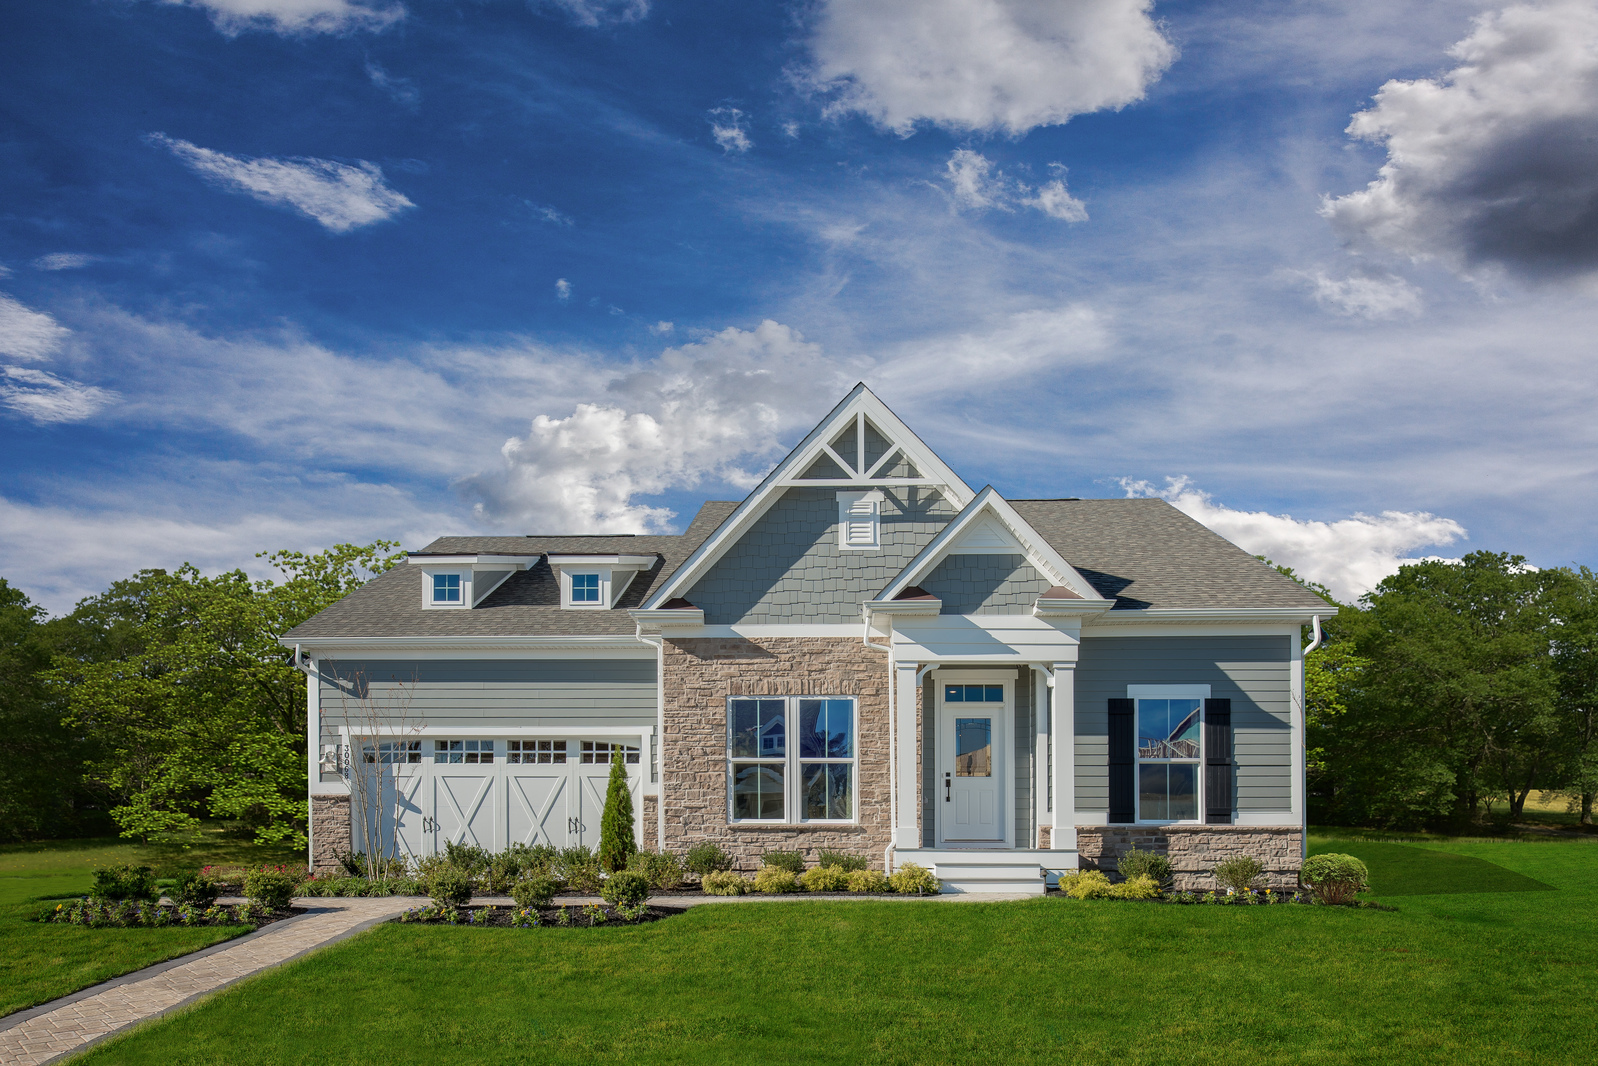 The newest Natelli community in Ocean View offering resort-style amenities and homesites bordered by ponds and mature trees.